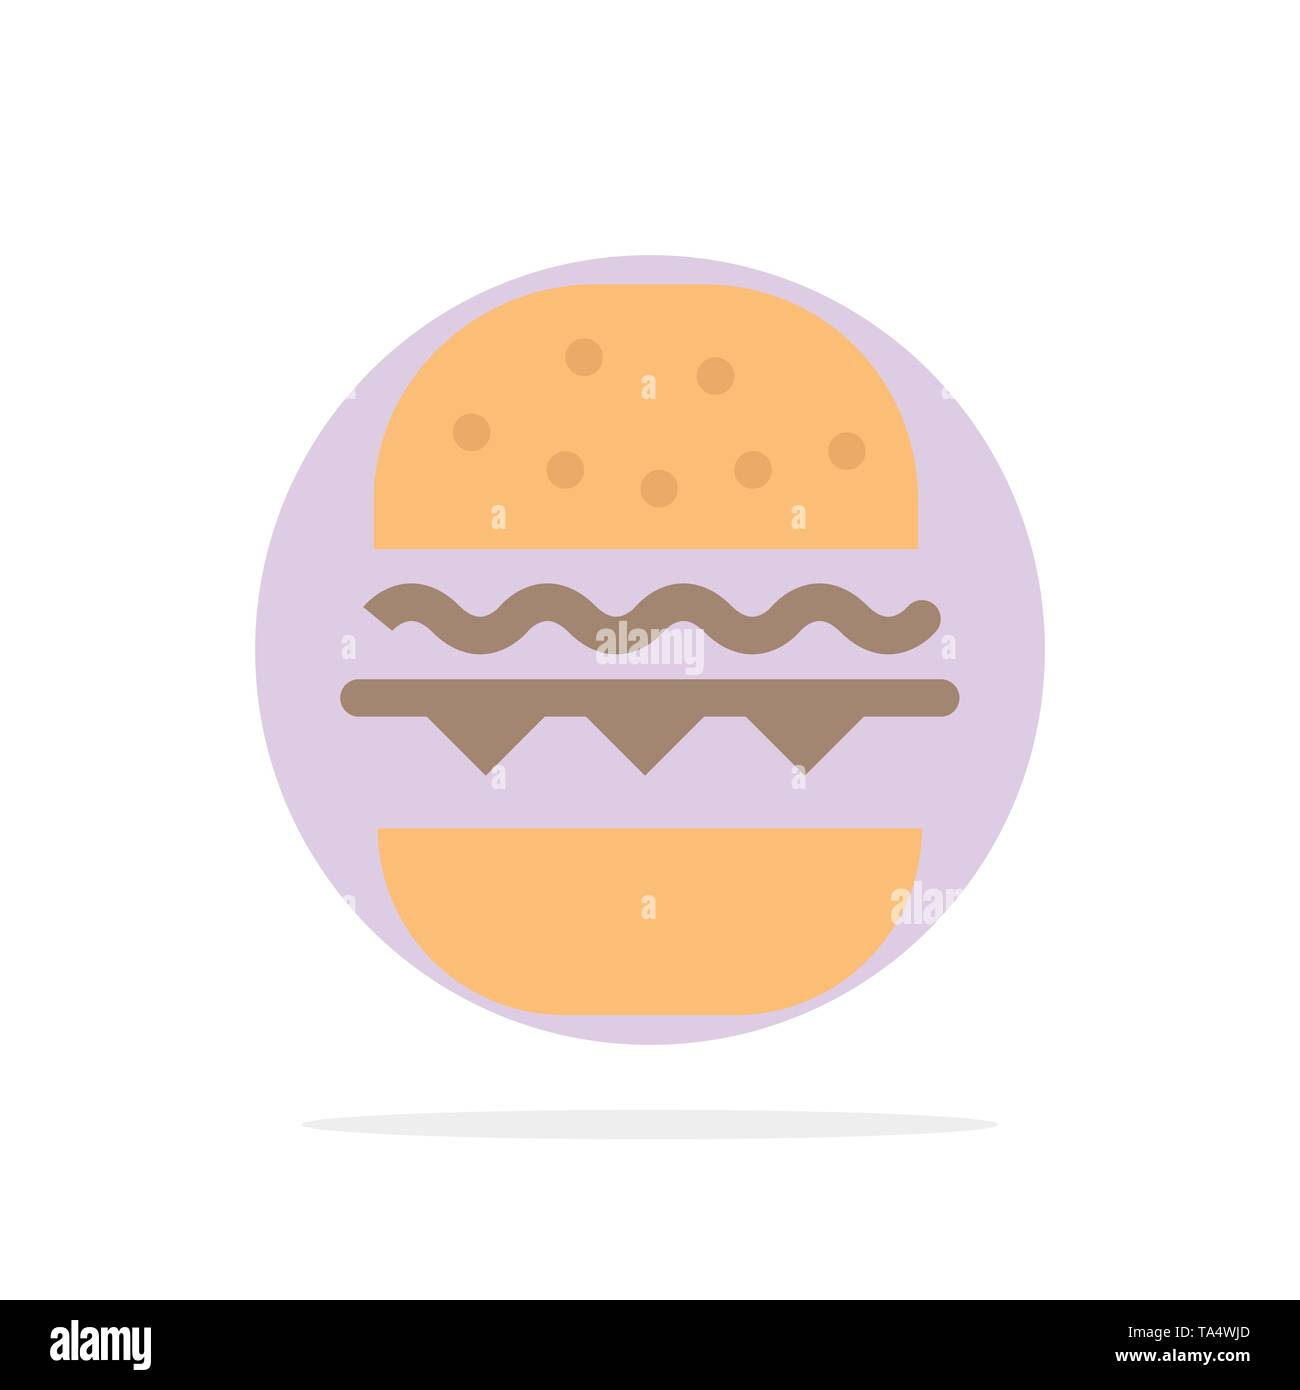 Burger, Food, Eat, Canada Abstract Circle Background Flat color Icon - Stock Image